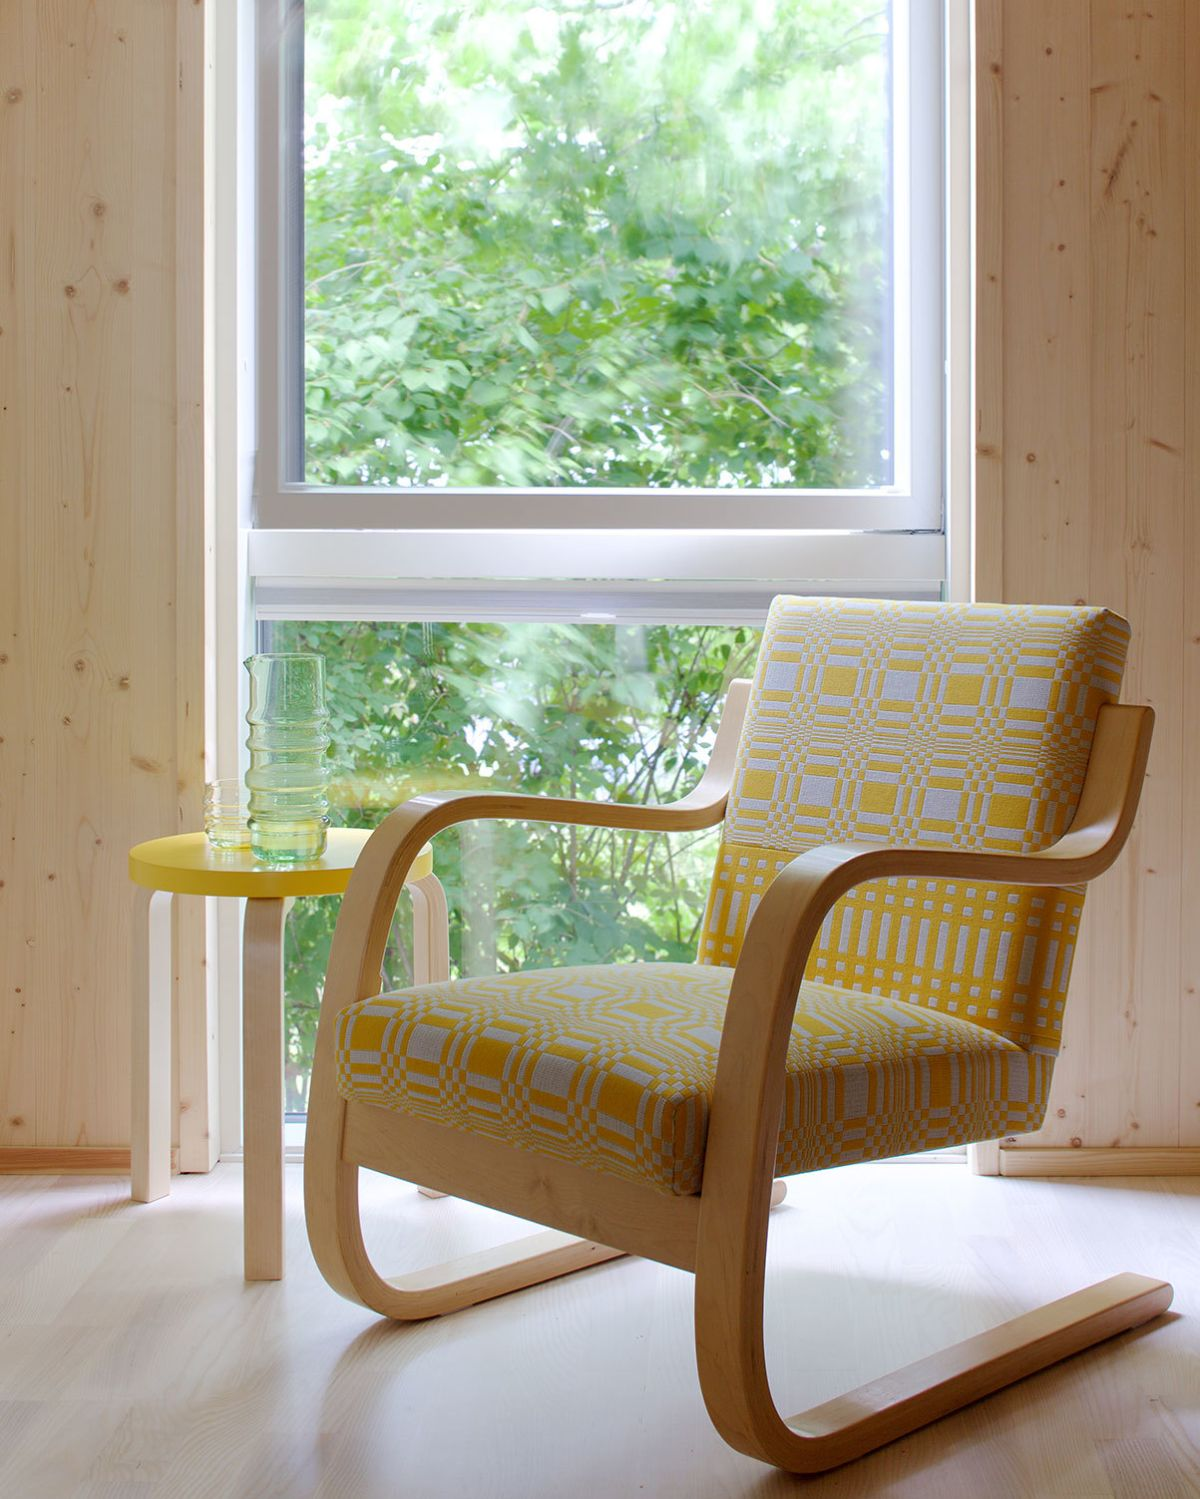 Johanna-Gullichsen-Doris-and-Nereus-Yellow-upholstery_web